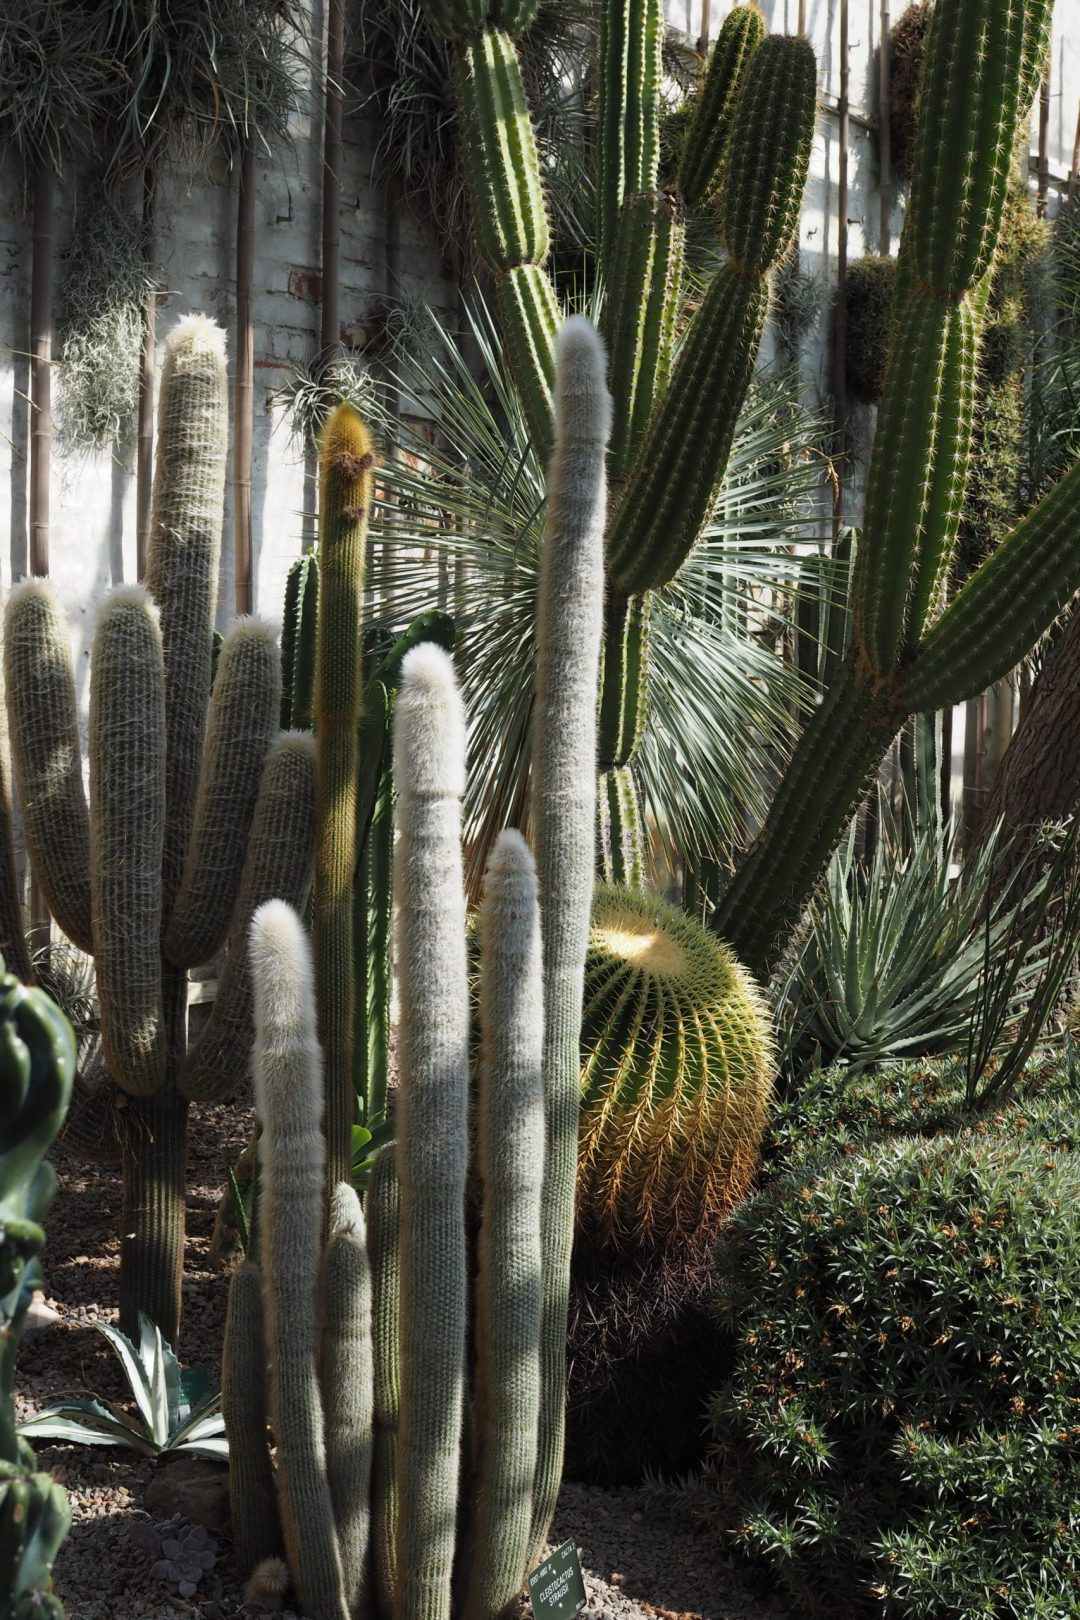 Catus love. Urban jungle, glass house in the Botanical Gardens Copenhagen